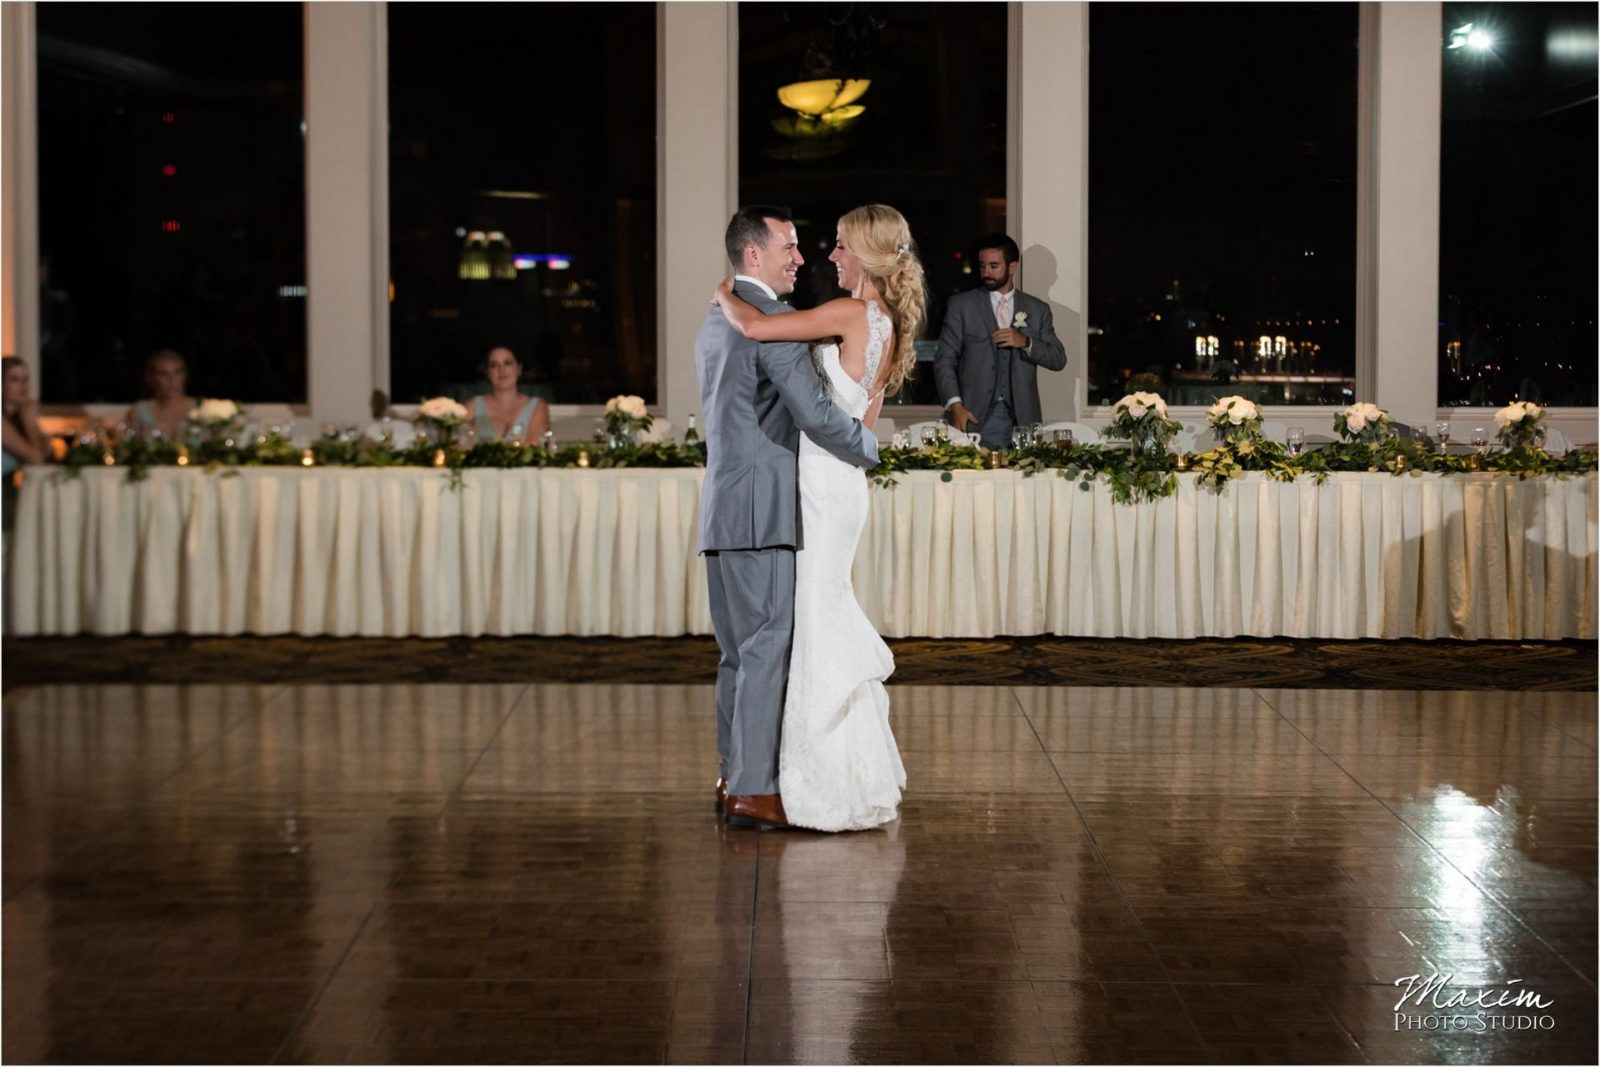 Drees Pavilion Covington Kentucky Wedding Reception